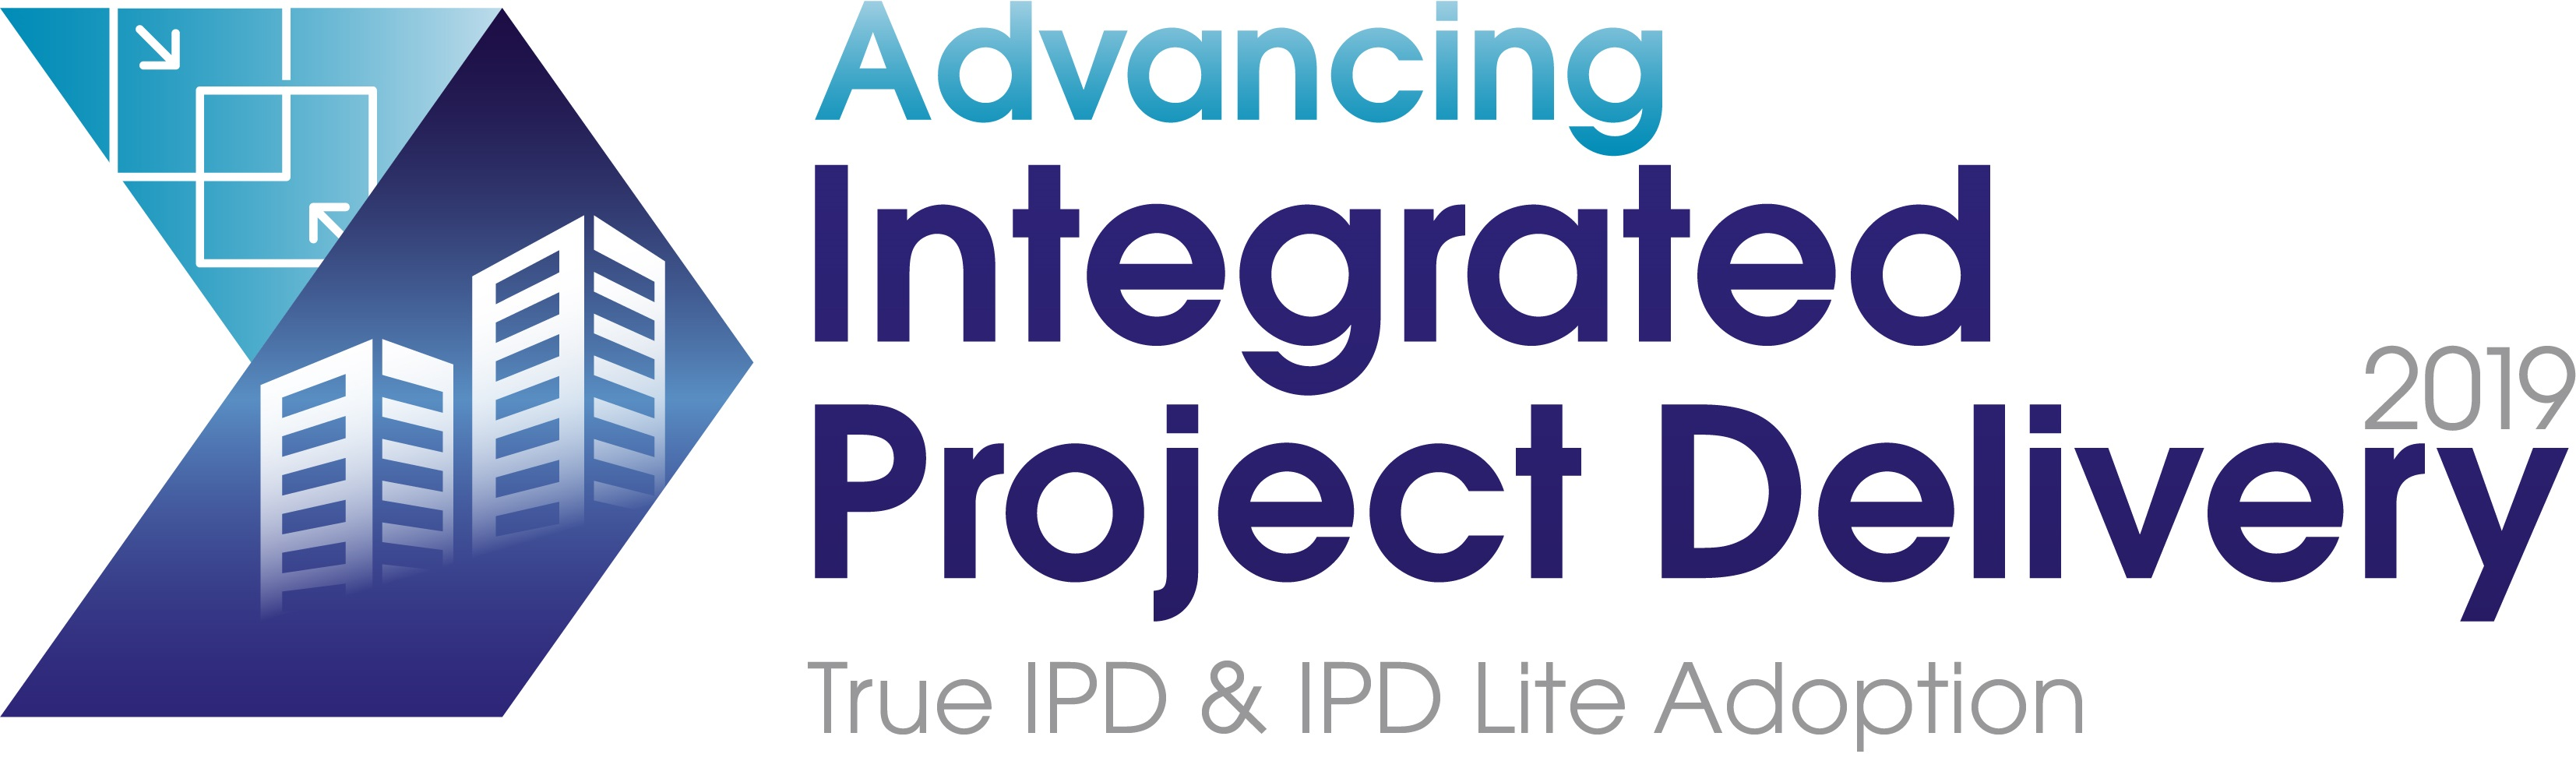 HW190512 Advancing Integrated Project Delivery 2019 logo